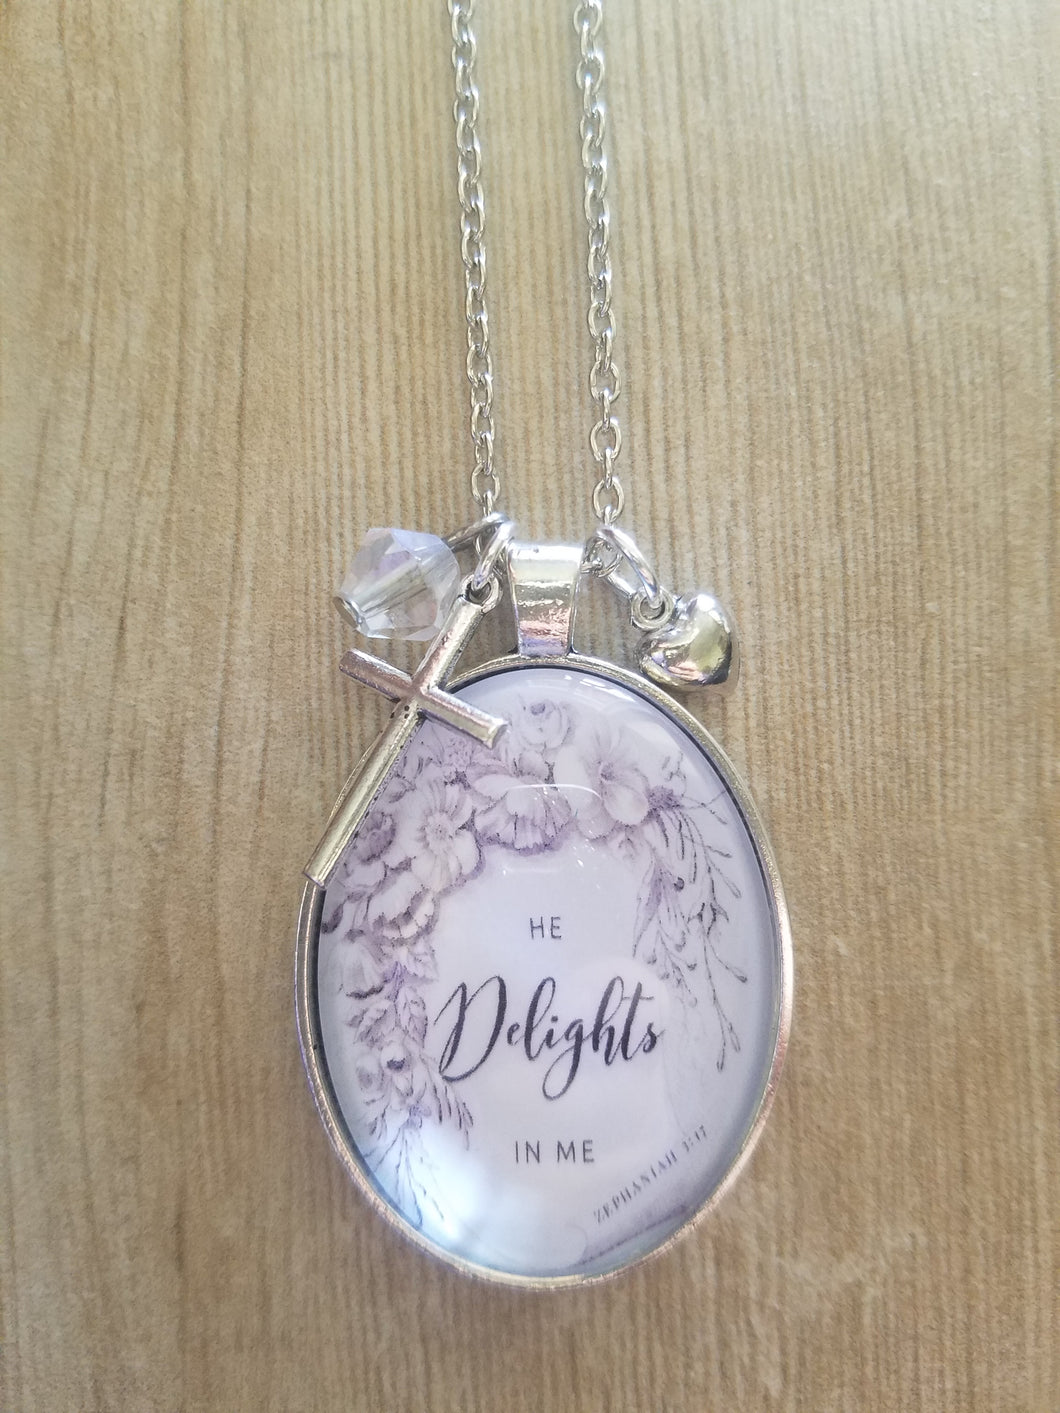 He Delights In Me - Large Oval